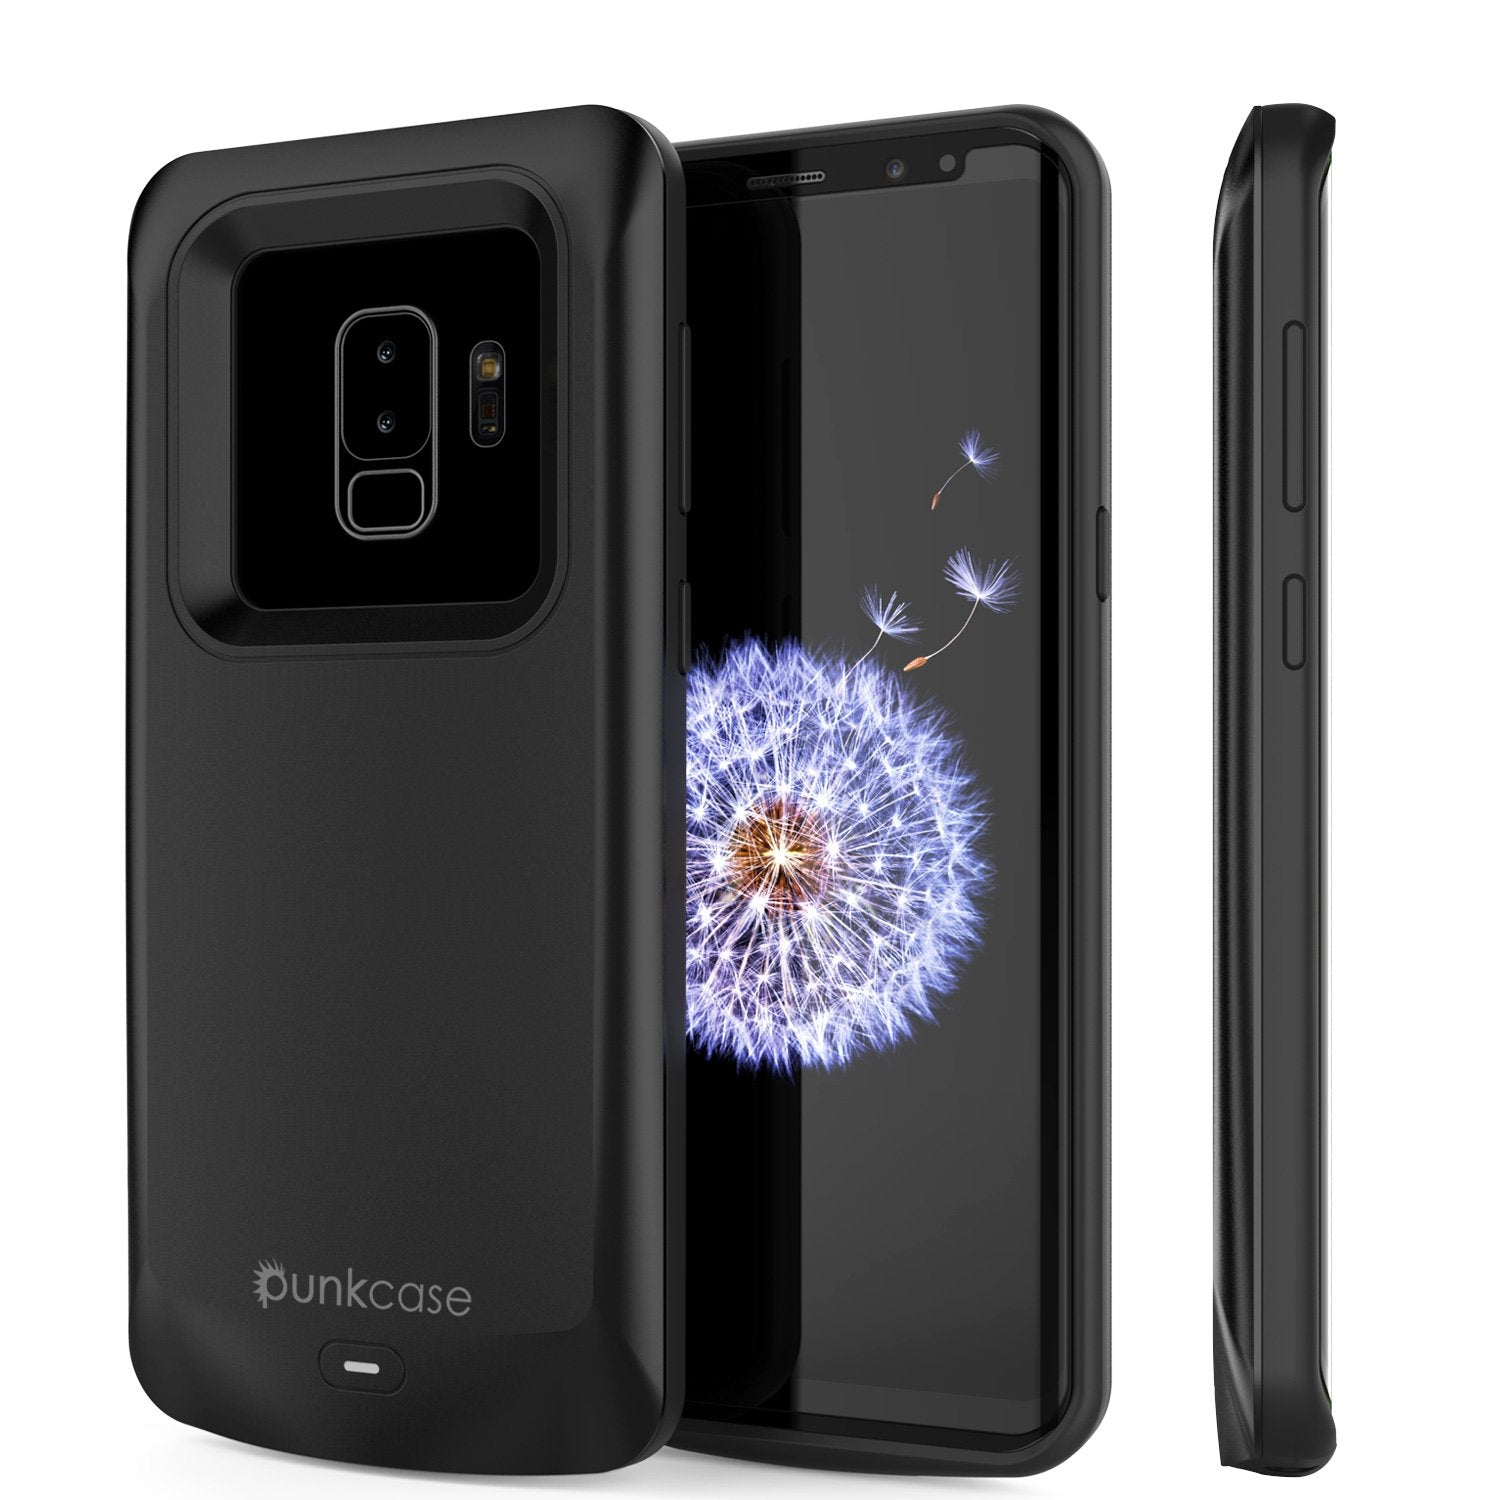 Galaxy S9 PLUS Battery Case, PunkJuice 5000mAH Fast Charging Power Bank W/ Screen Protector | Integrated USB Port | IntelSwitch | Slim, Secure and Reliable | Suitable for Samsung Galaxy S9+ [Black]